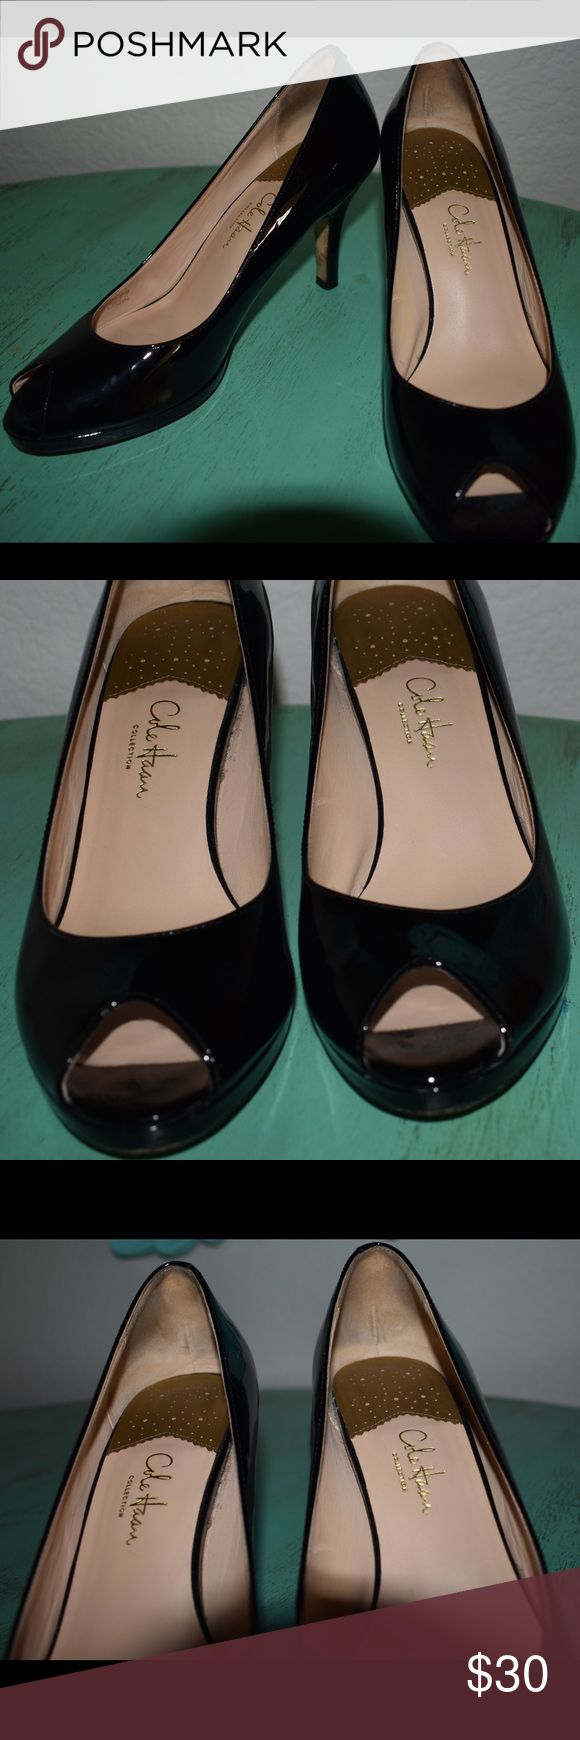 Cole Hann Nike Air black peep toe size 8 Cole Hann Nike Air black peep toe size 8. Used but in great condition. Cole Haan Shoes Heels